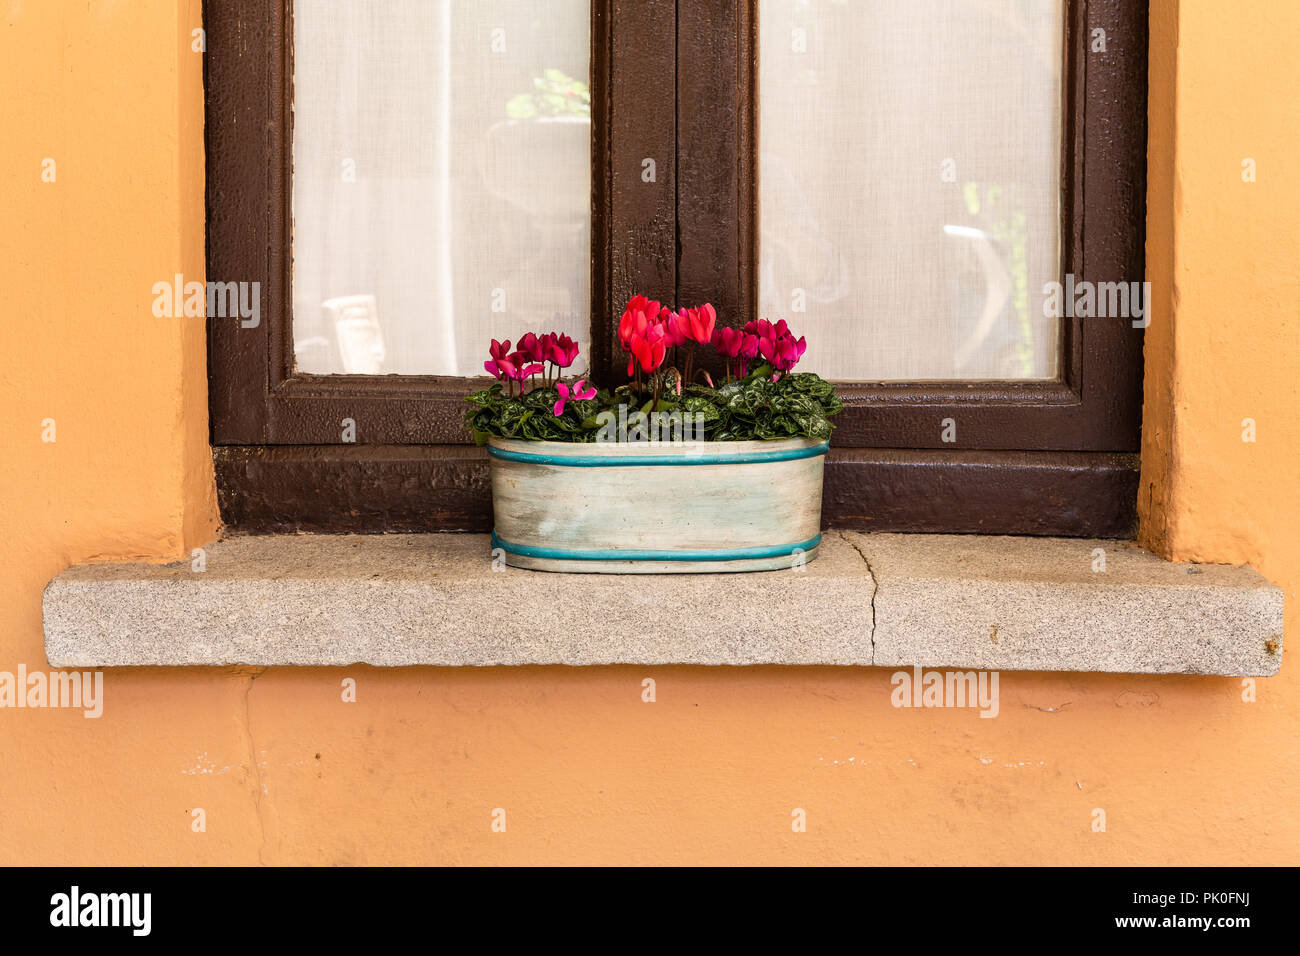 Flowers in plant pots on a windowsill - Stock Image